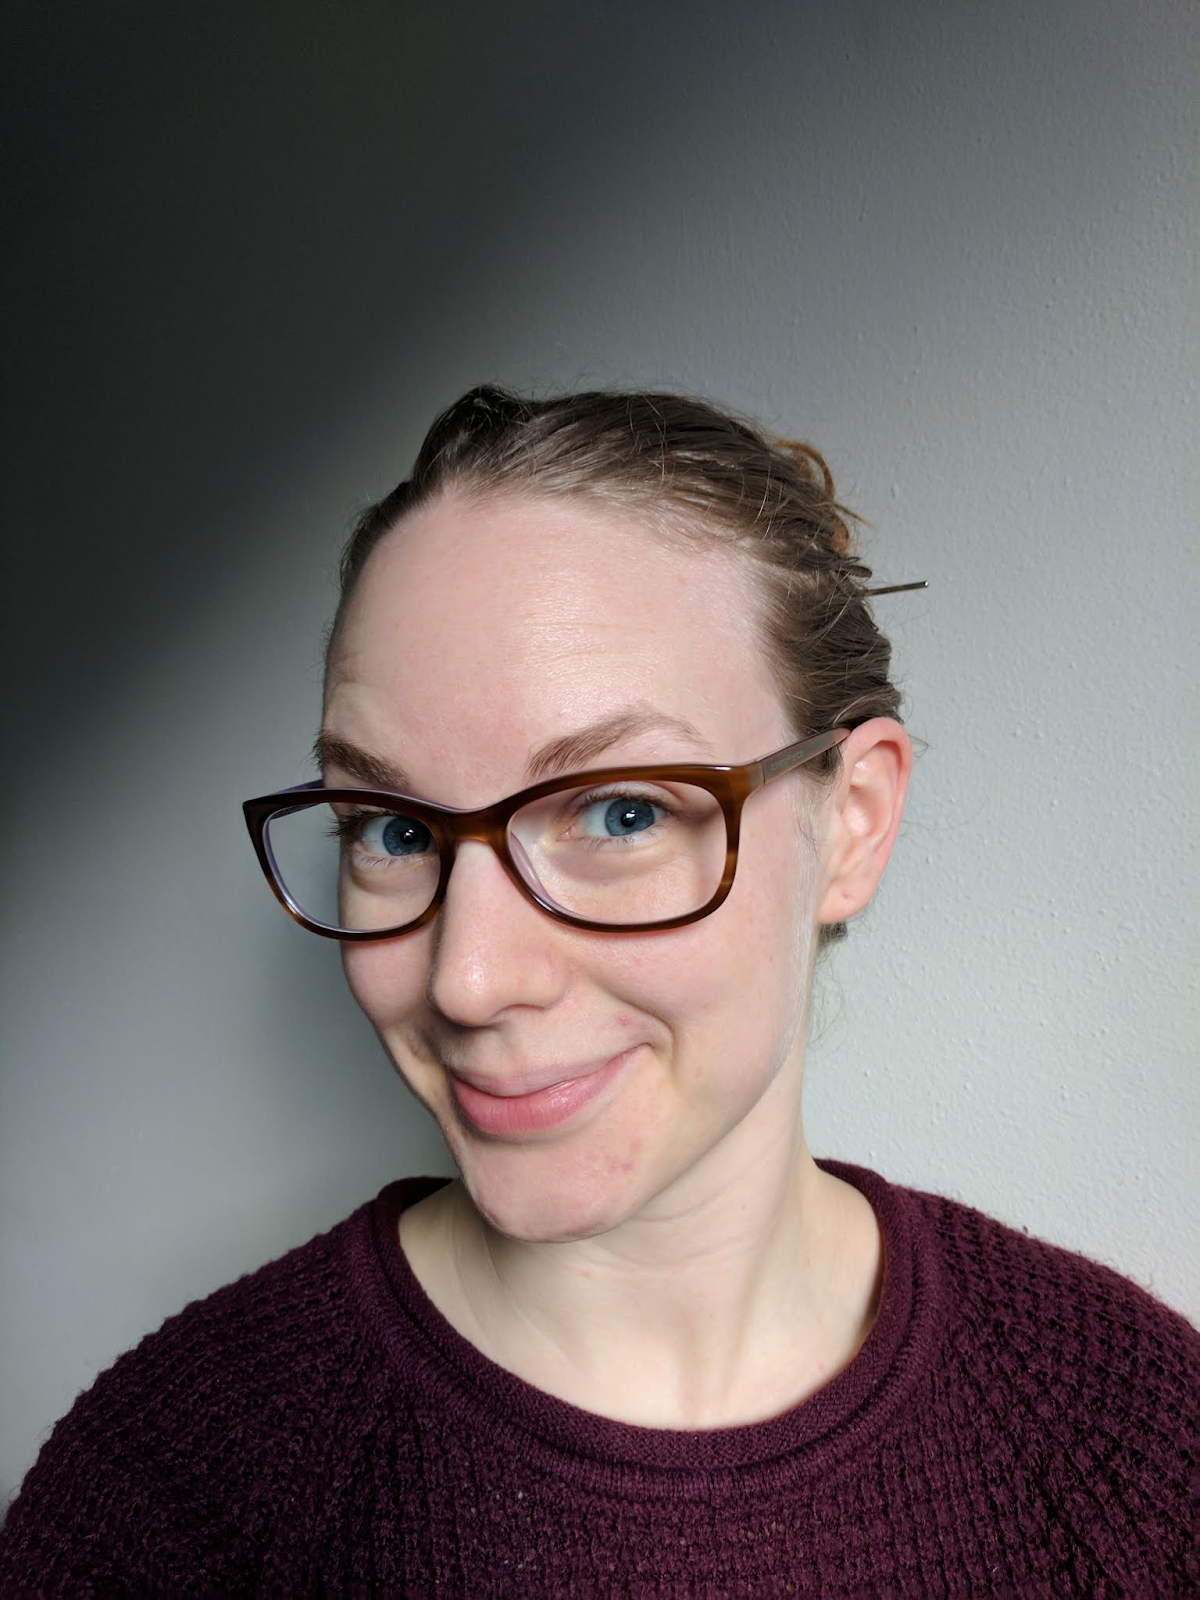 Interview with Data Scientist at kaggle: Dr. Rachael Tatman